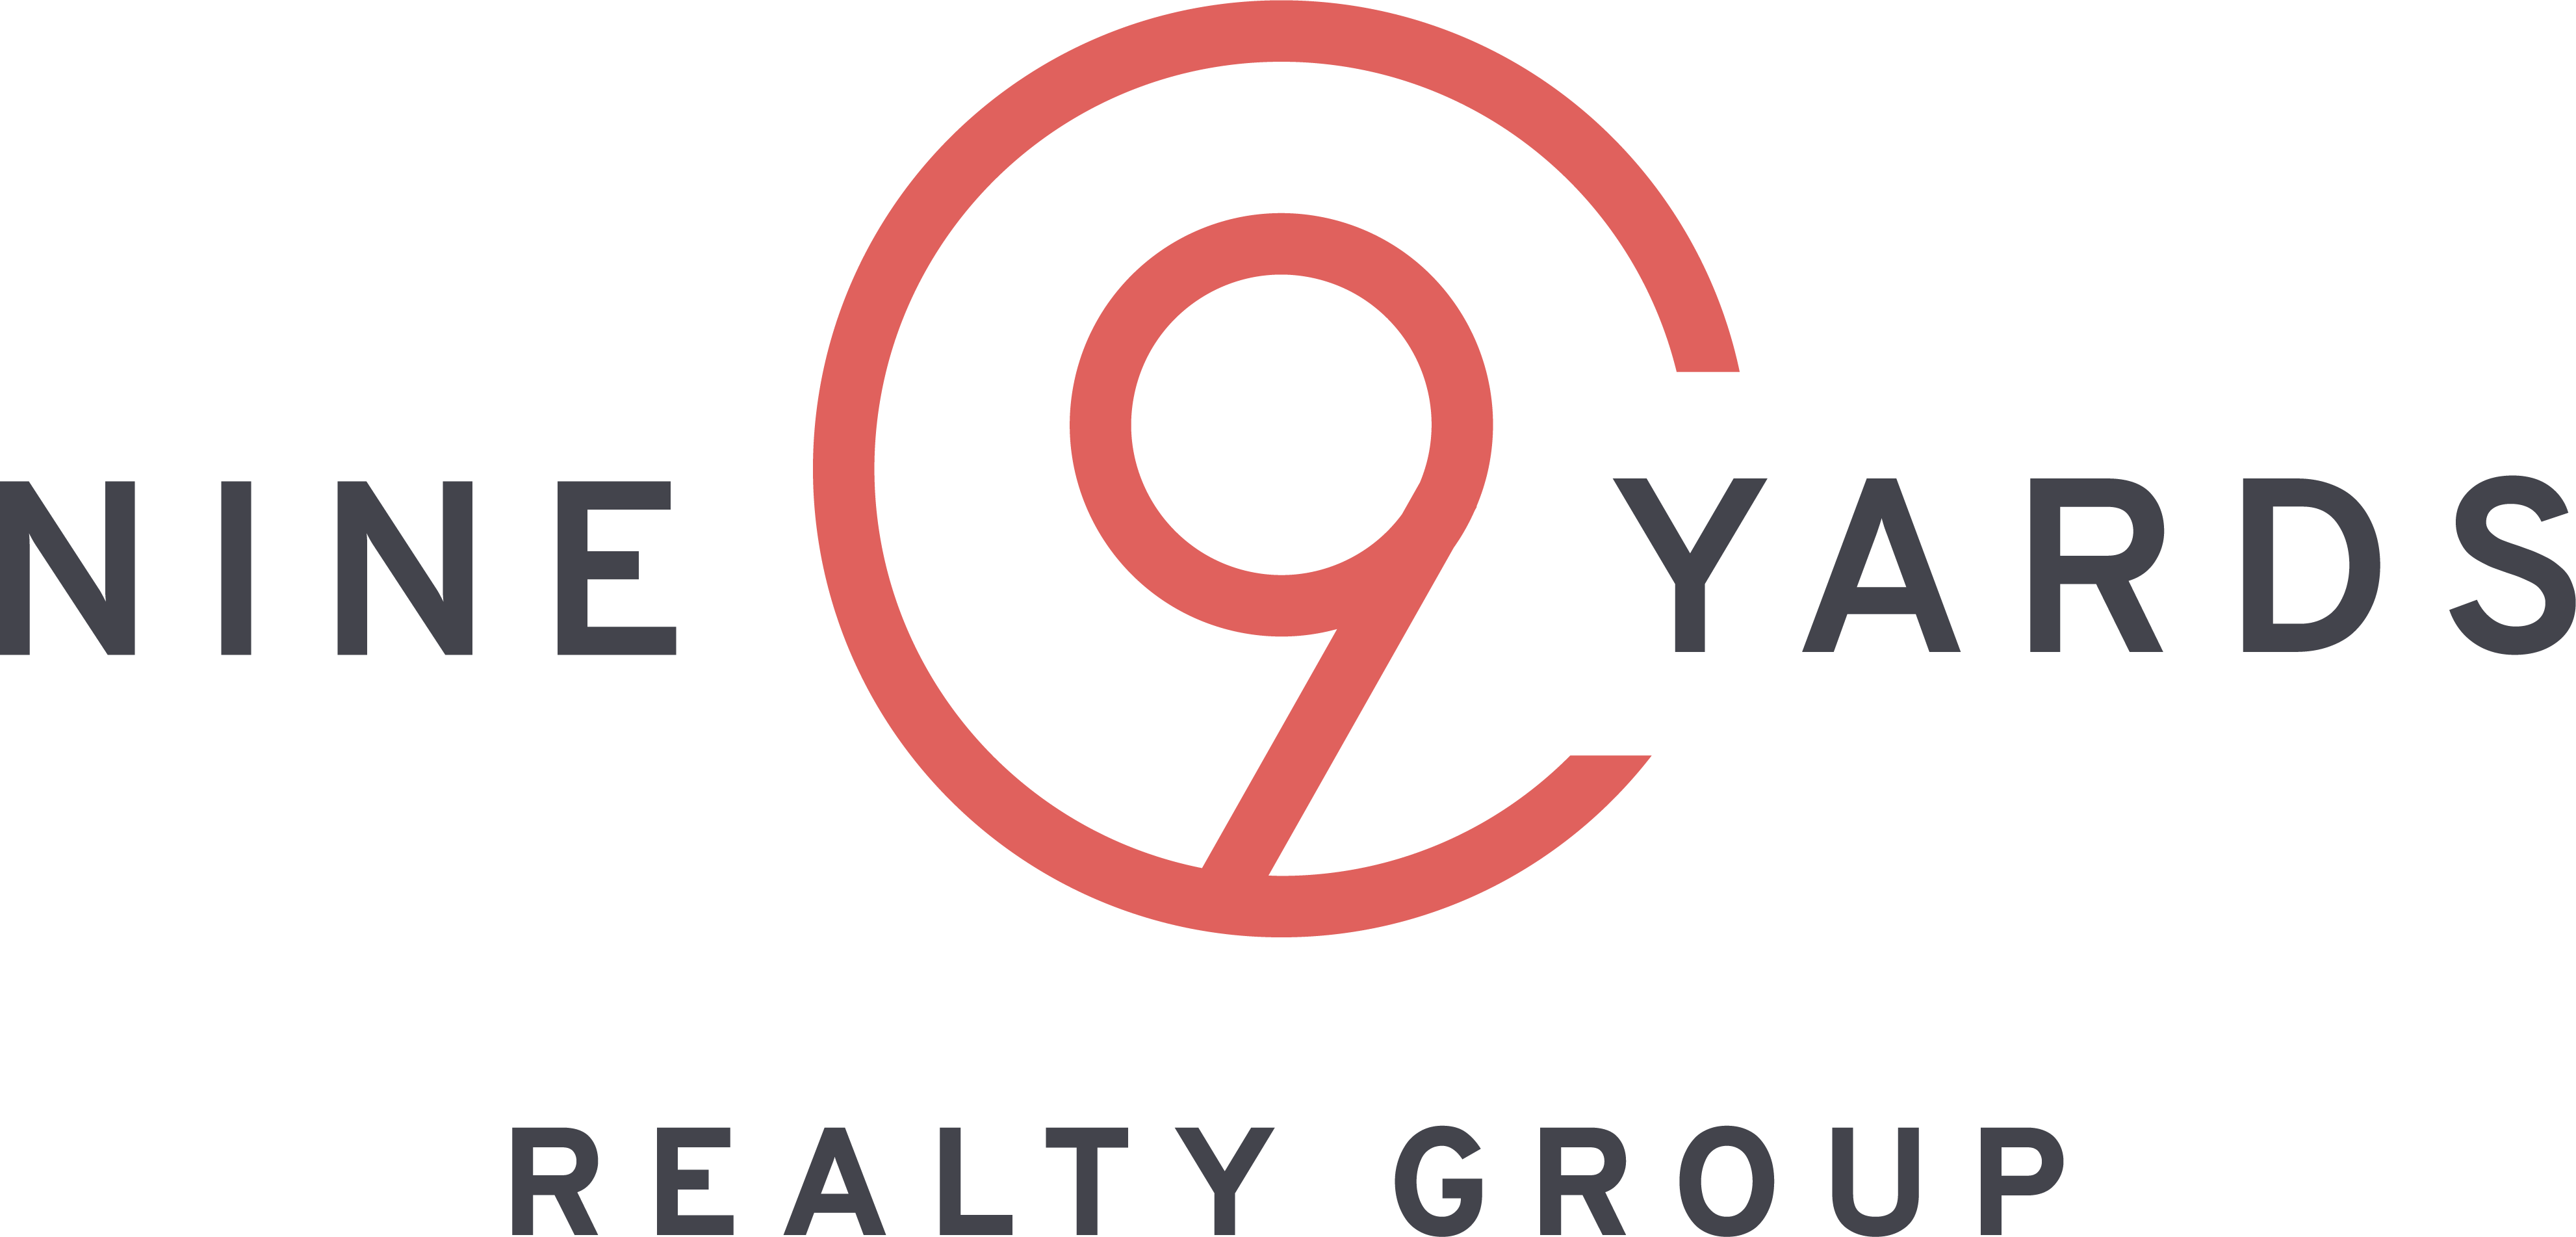 9 Yards Realty Group